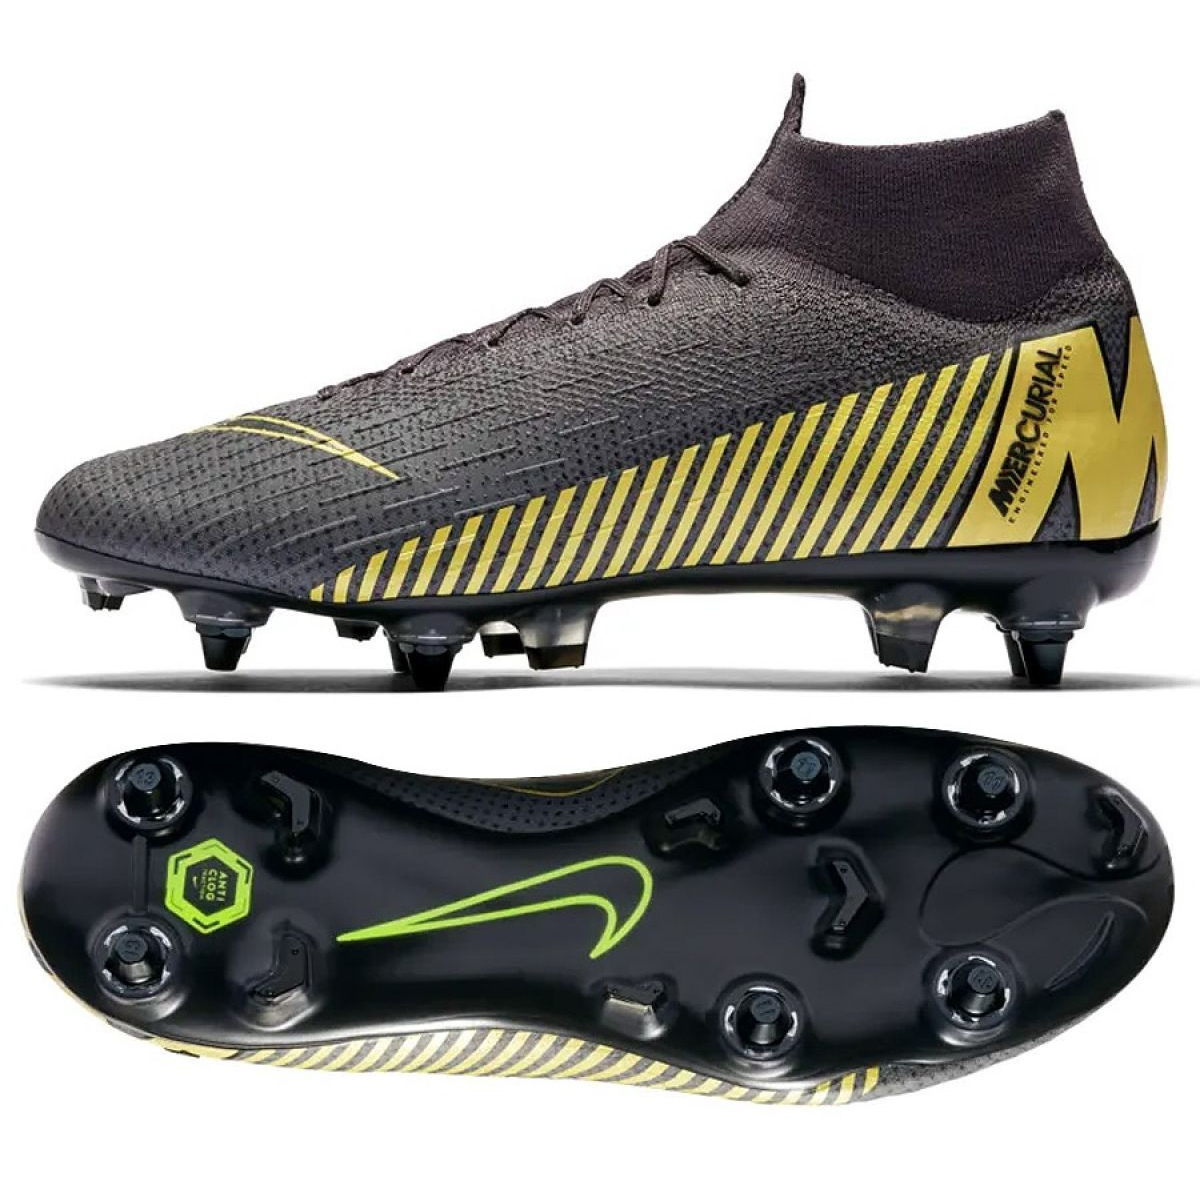 the best attitude 6d4c7 a152f Football shoes Nike Mercurial Superfly 6 Elite SG-Pro M AH7366-070